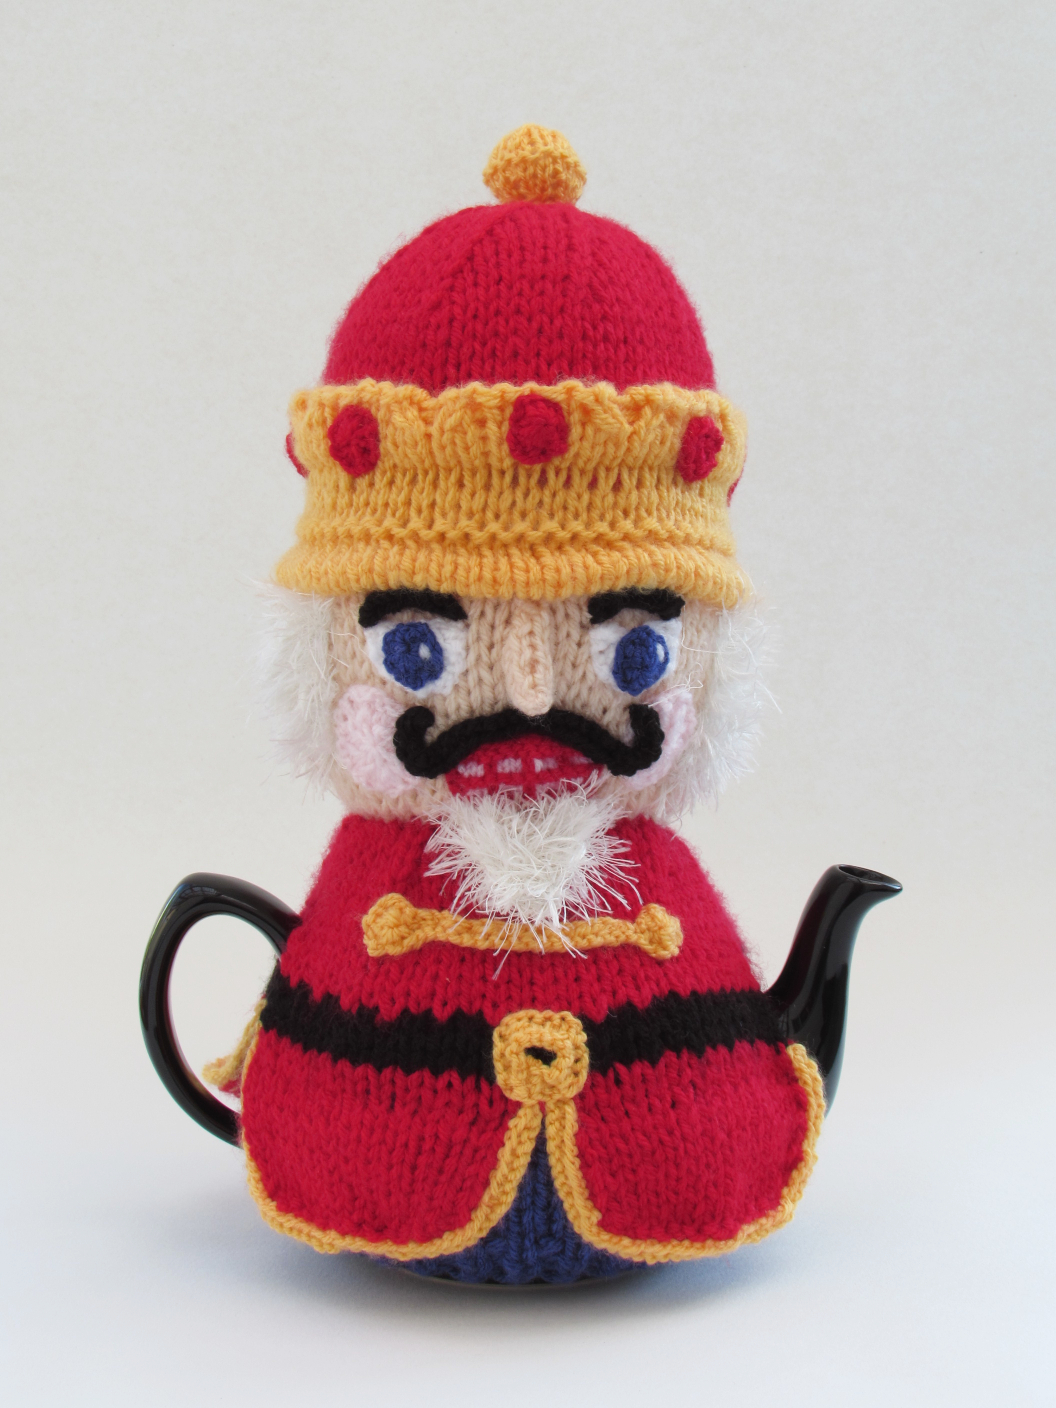 The Nutcracker tea cosy